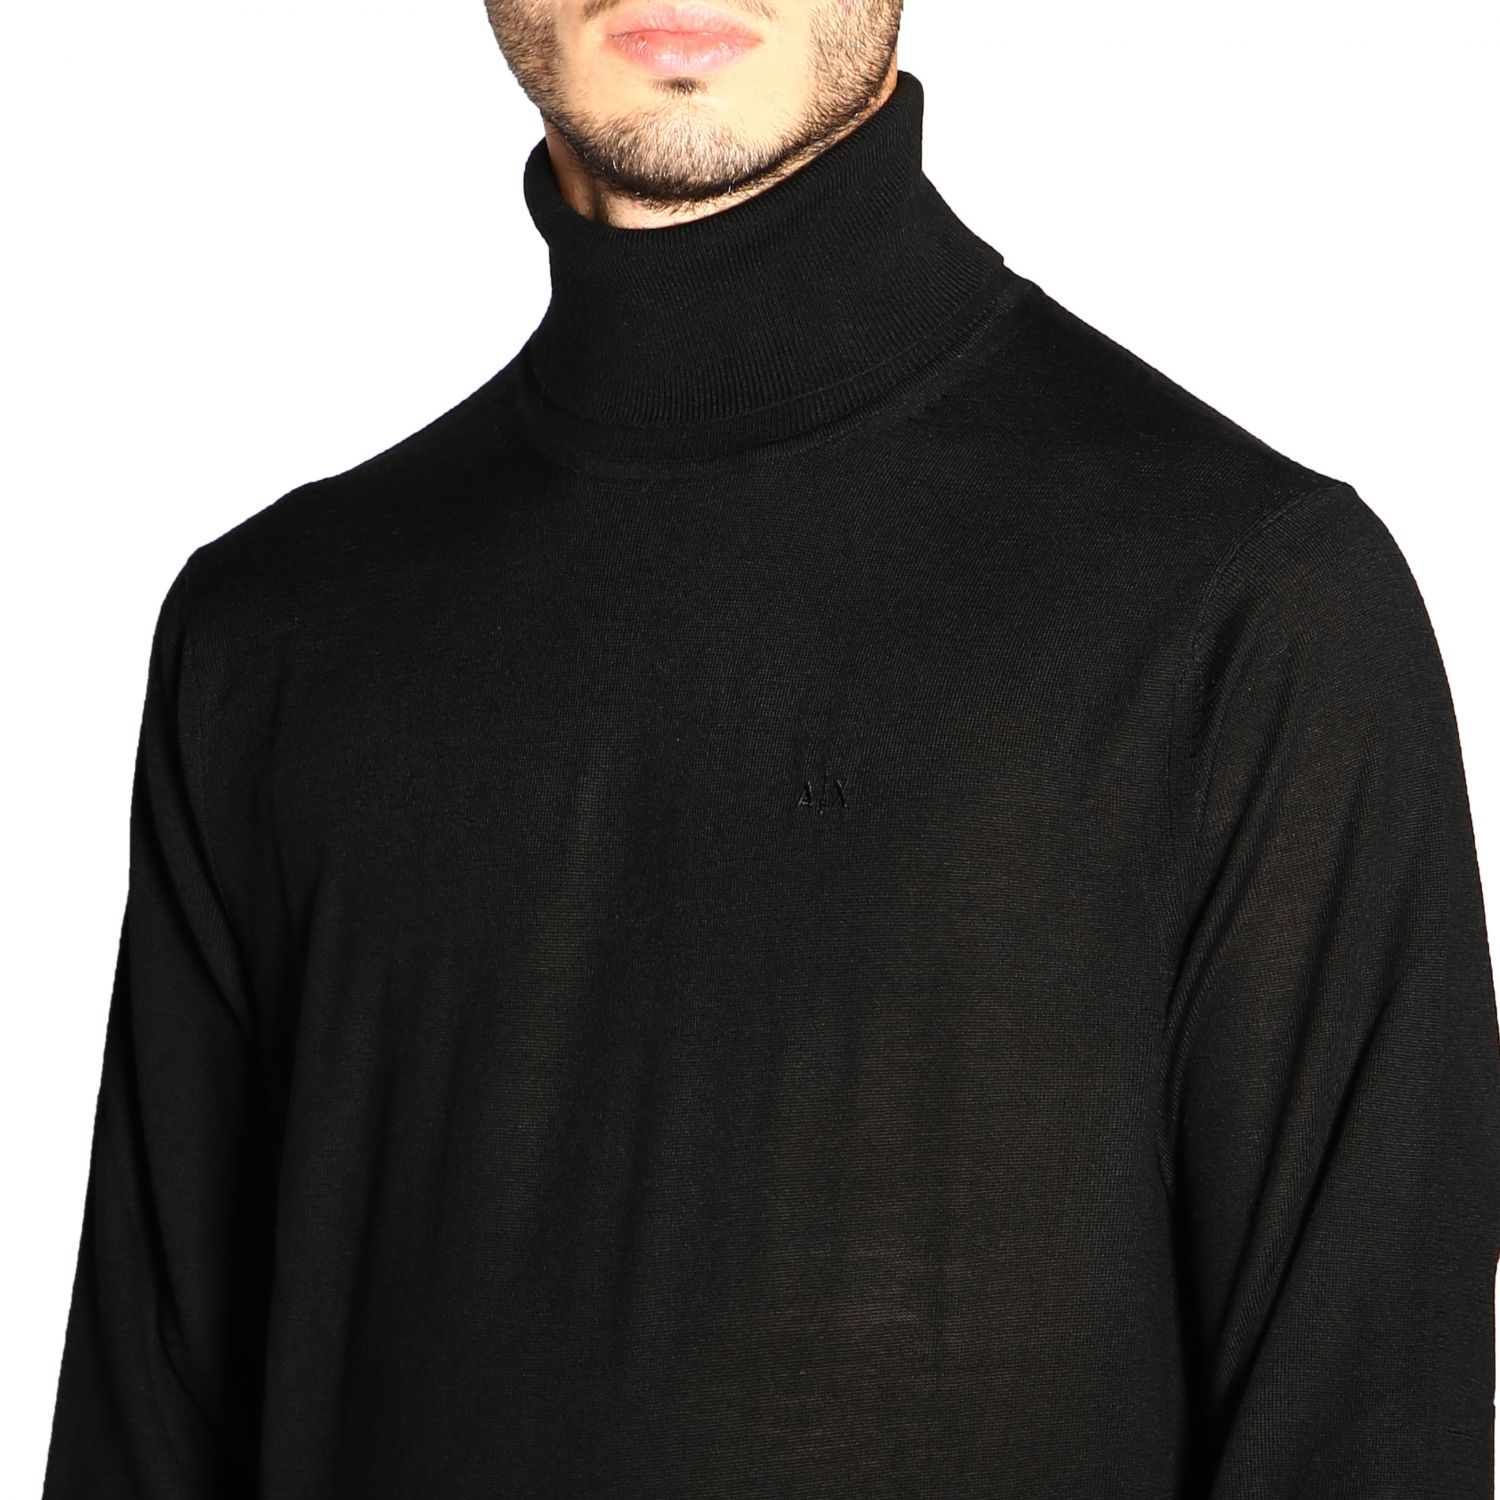 Sweater men Armani Exchange black 5